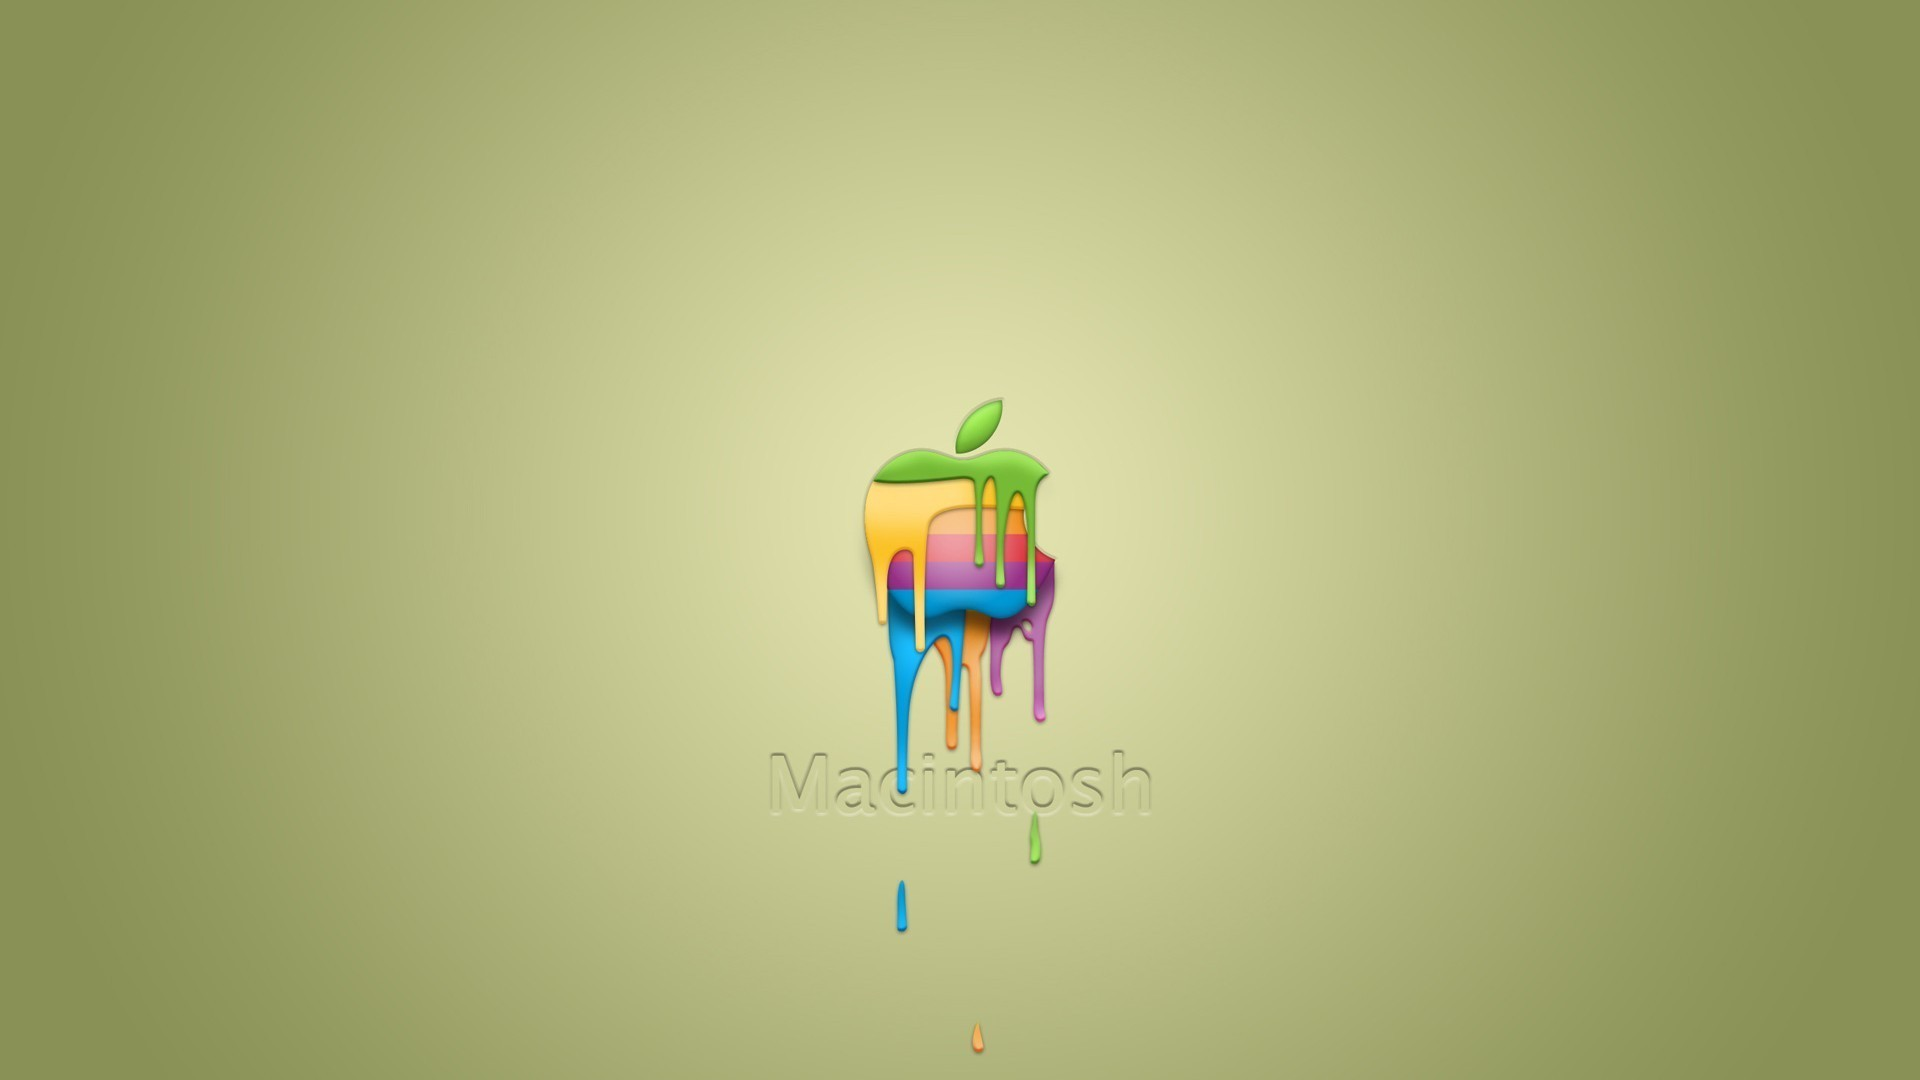 Macintosh paint wallpaper 1320 PC en 1920x1080